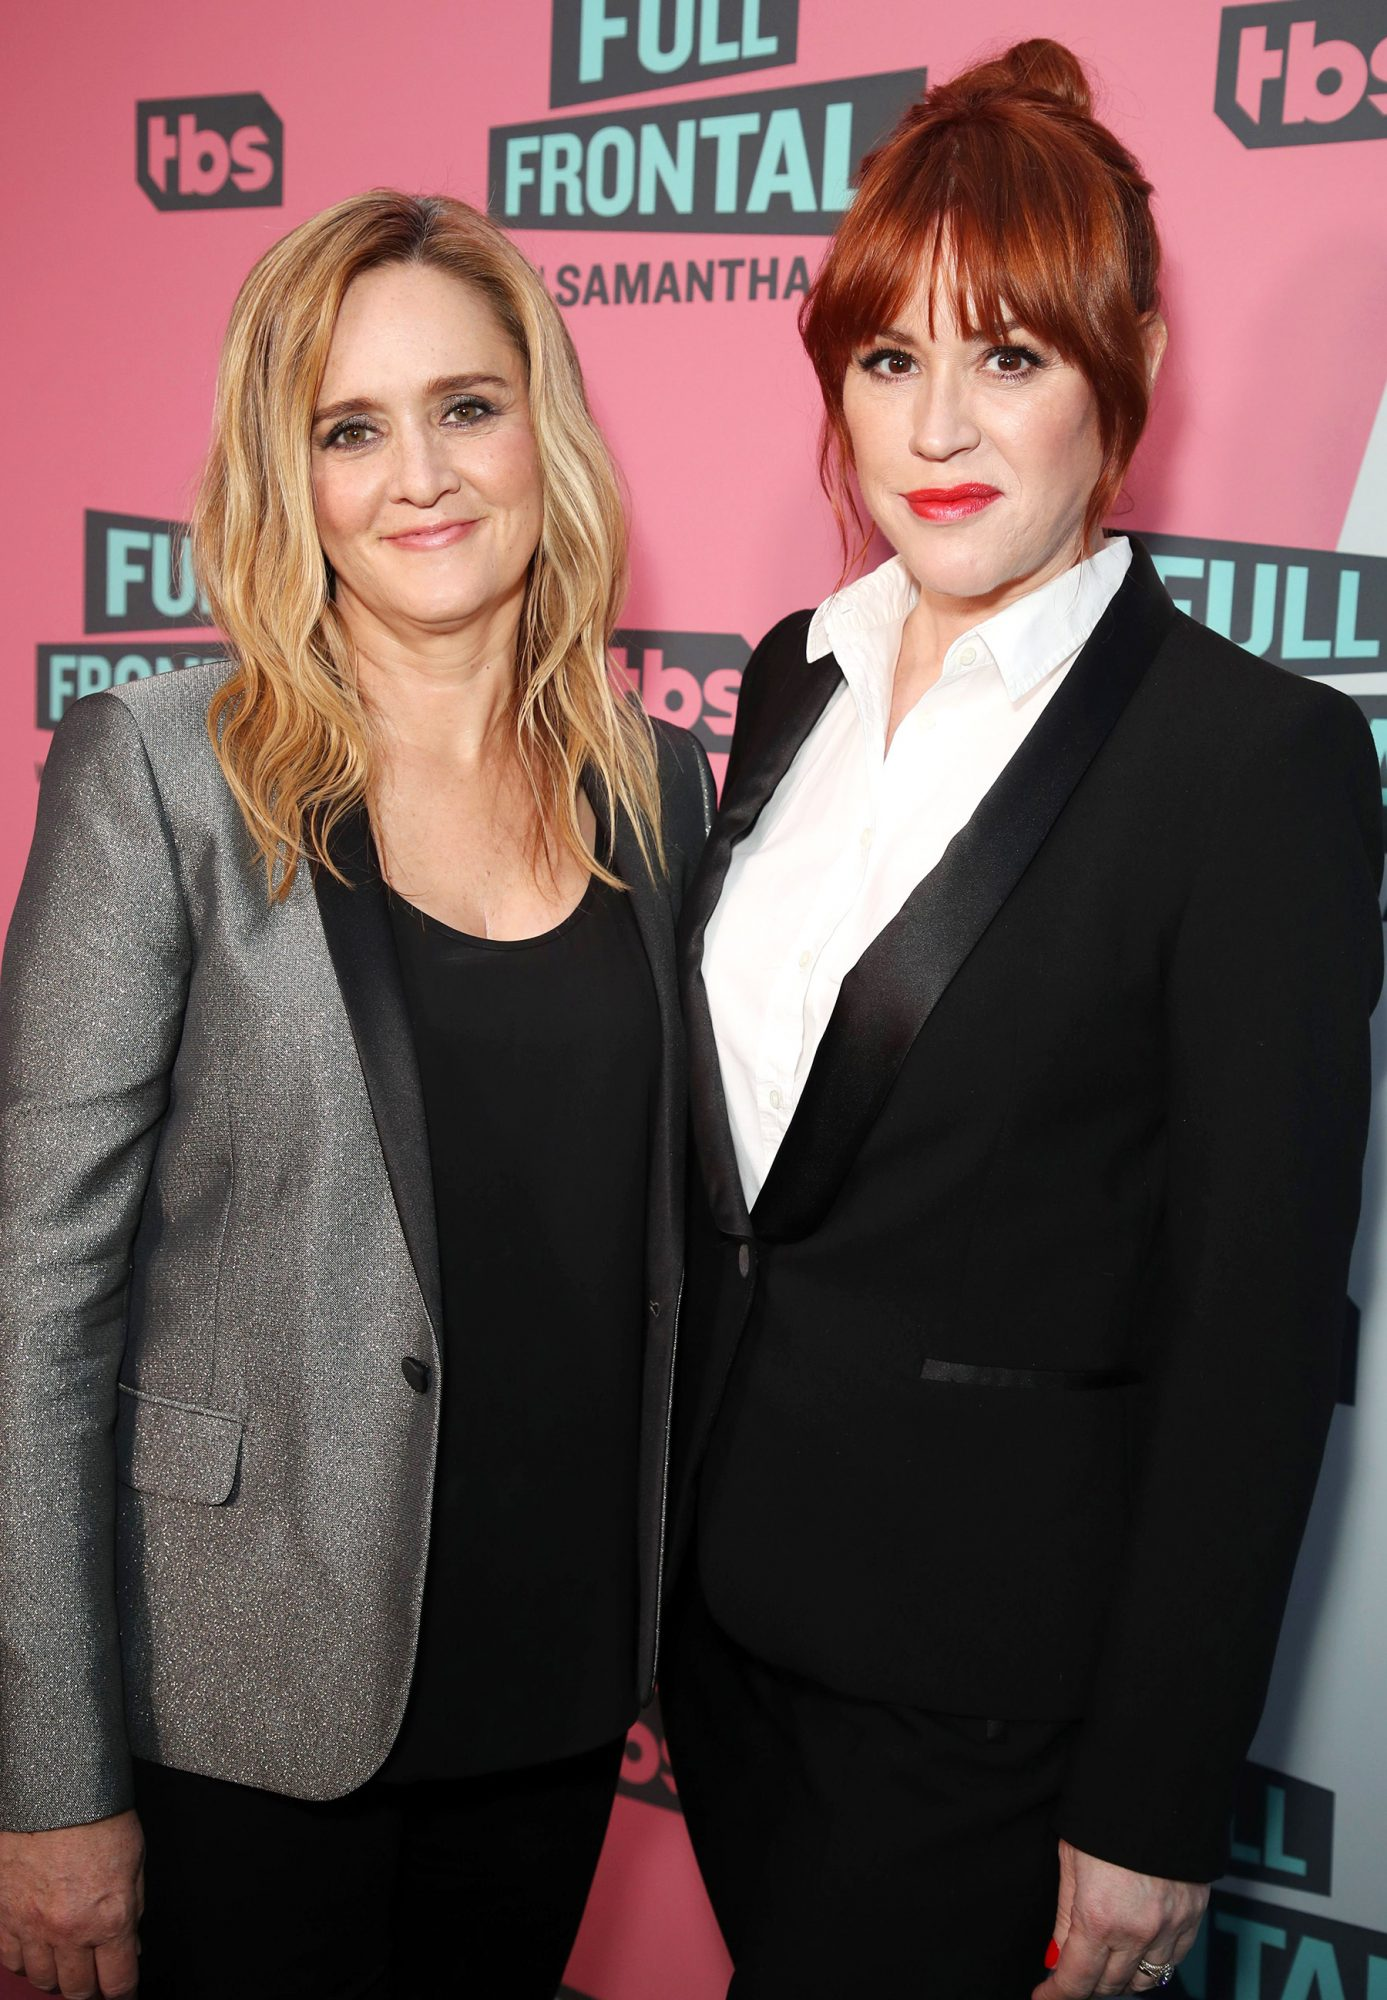 TBS 'Full Frontal with Samantha Bee' FYC event, Arrivals, Los Angeles, USA - 24 May 2018